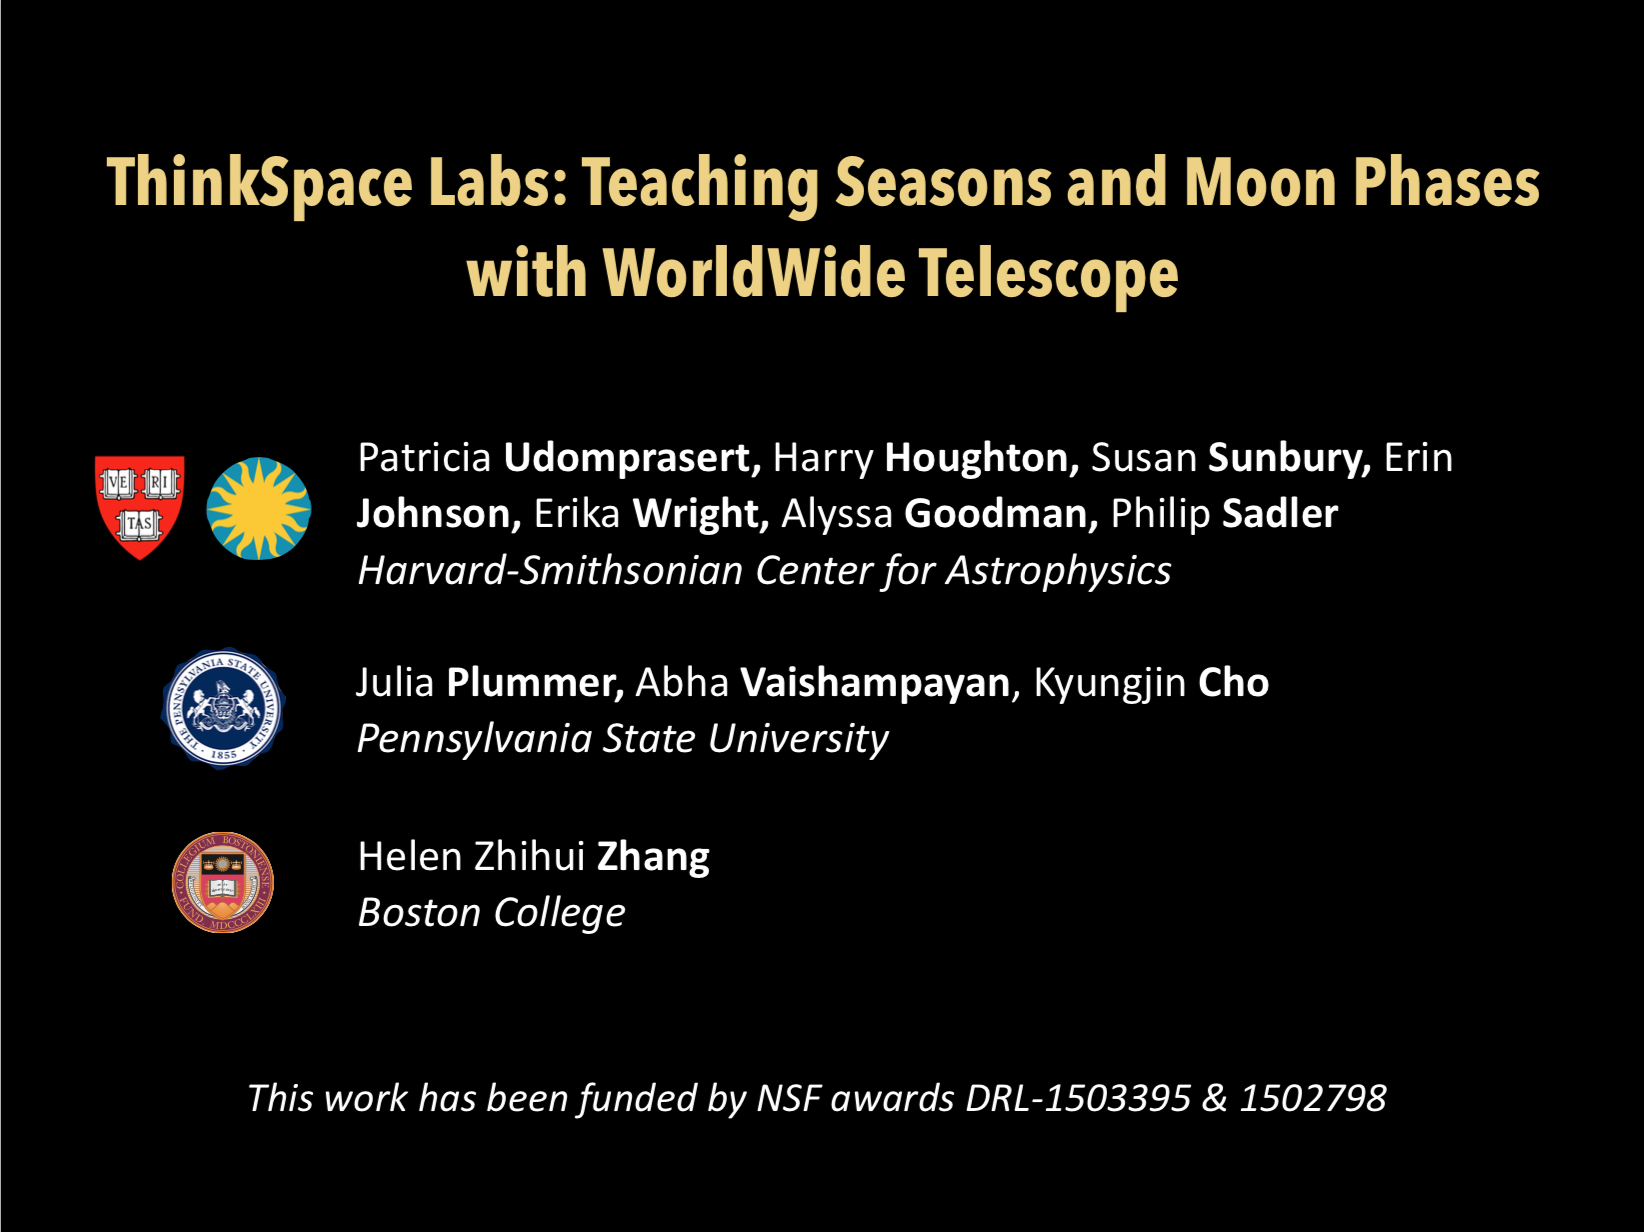 2019 AAS ThinkSpace Labs Presentation